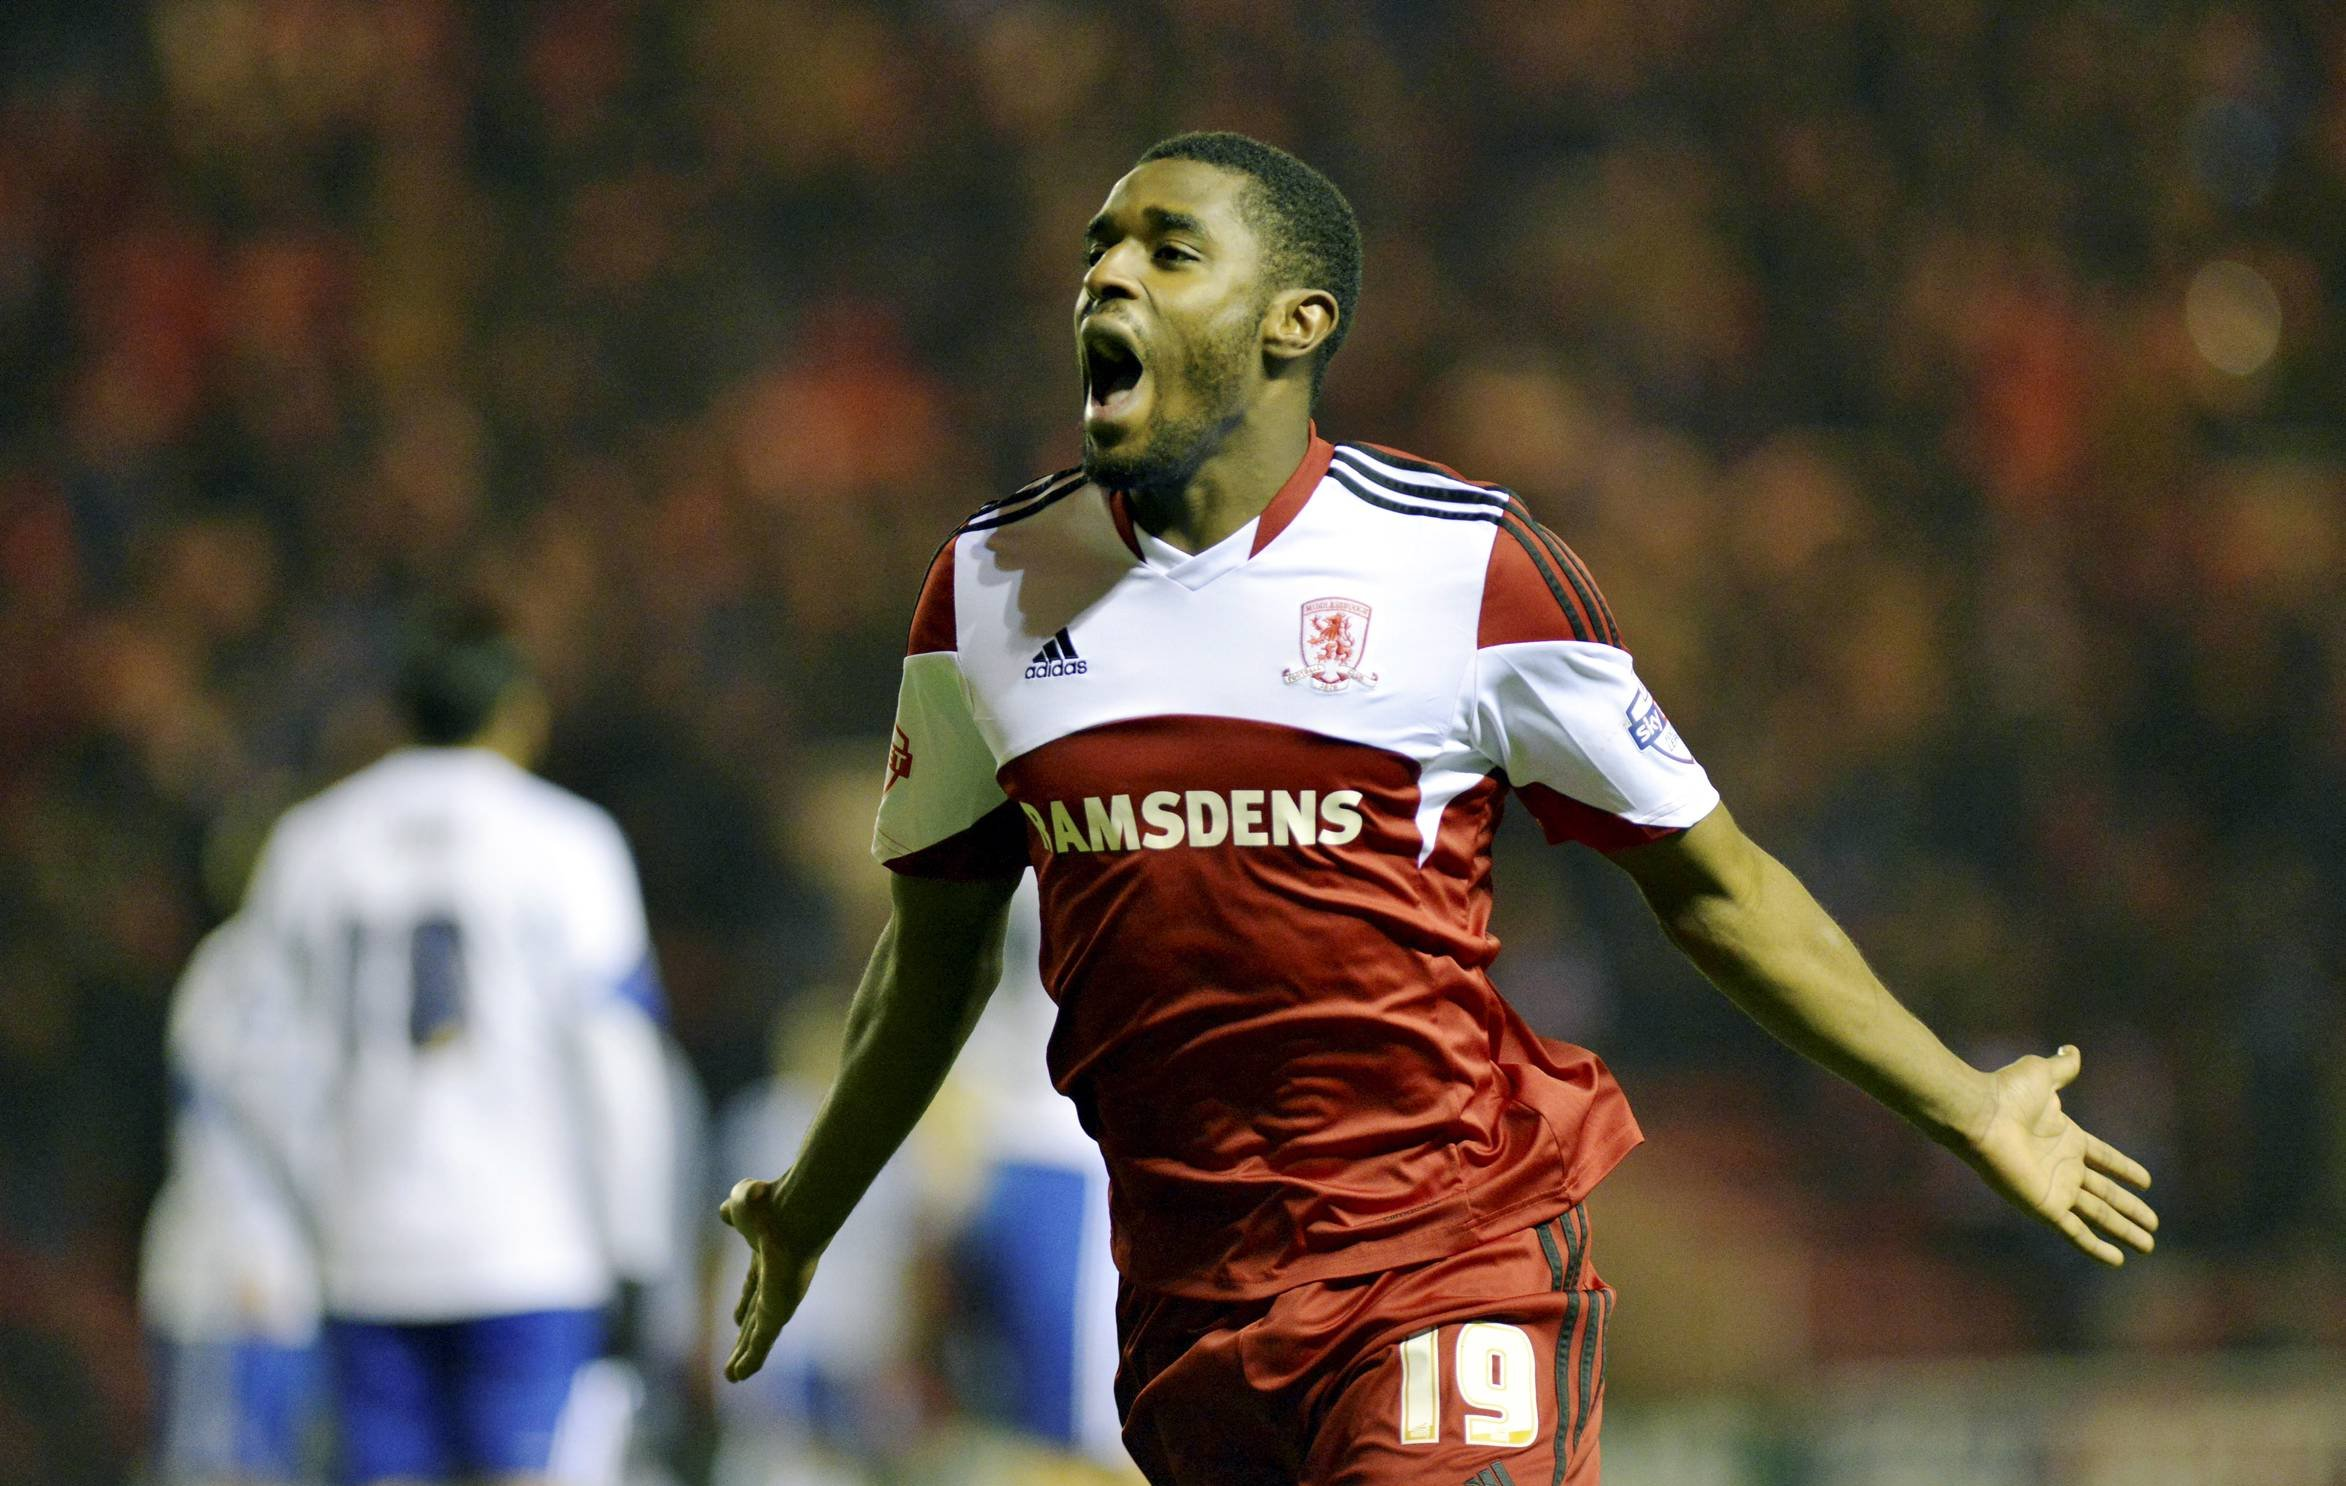 ONE UP: Boro's man of the match Mustapha Carayol after putting his side 1-0 up against Forest in the 53rd minute last night